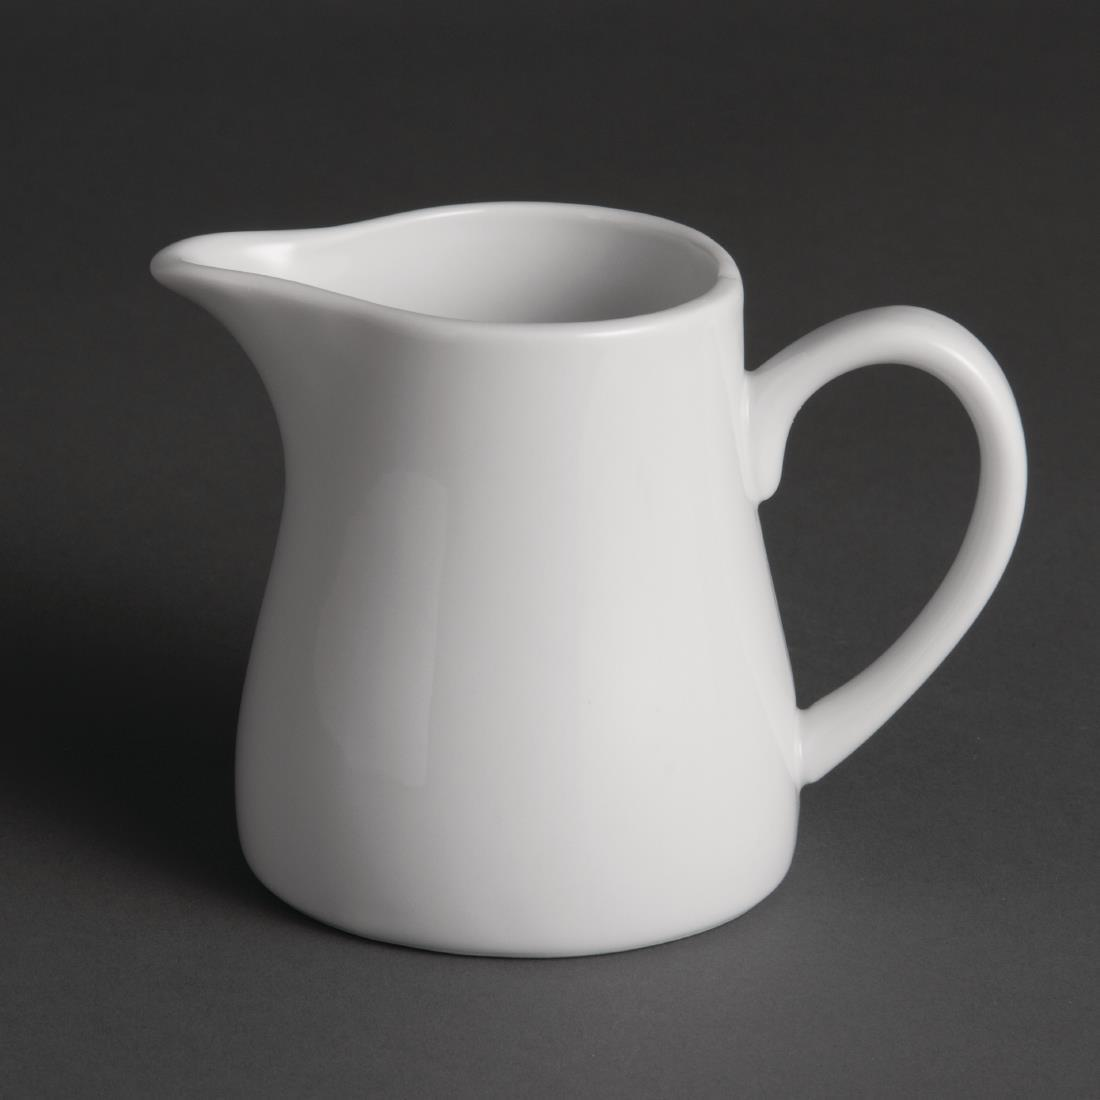 Olympia Whiteware Cream and Milk Jugs 305ml